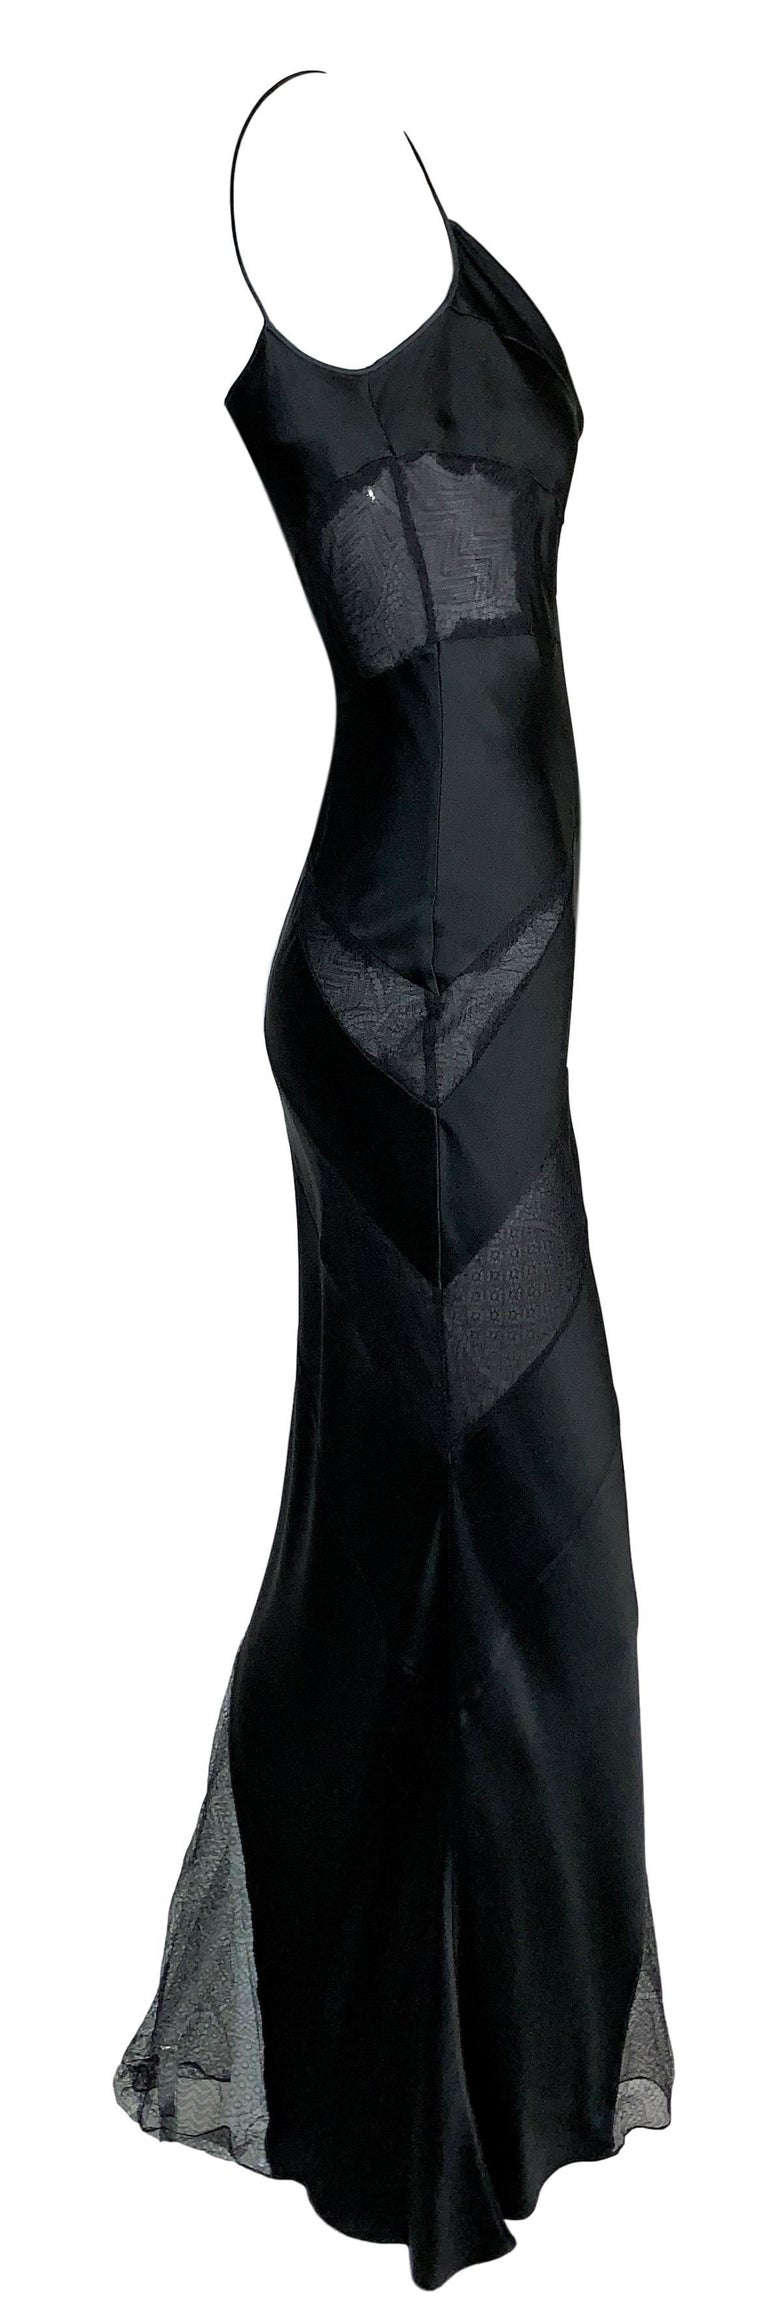 F/W 2000 Christian Dior John Galliano Sheer Black Lace Panels Gown Dress In Good Condition For Sale In Yukon, OK